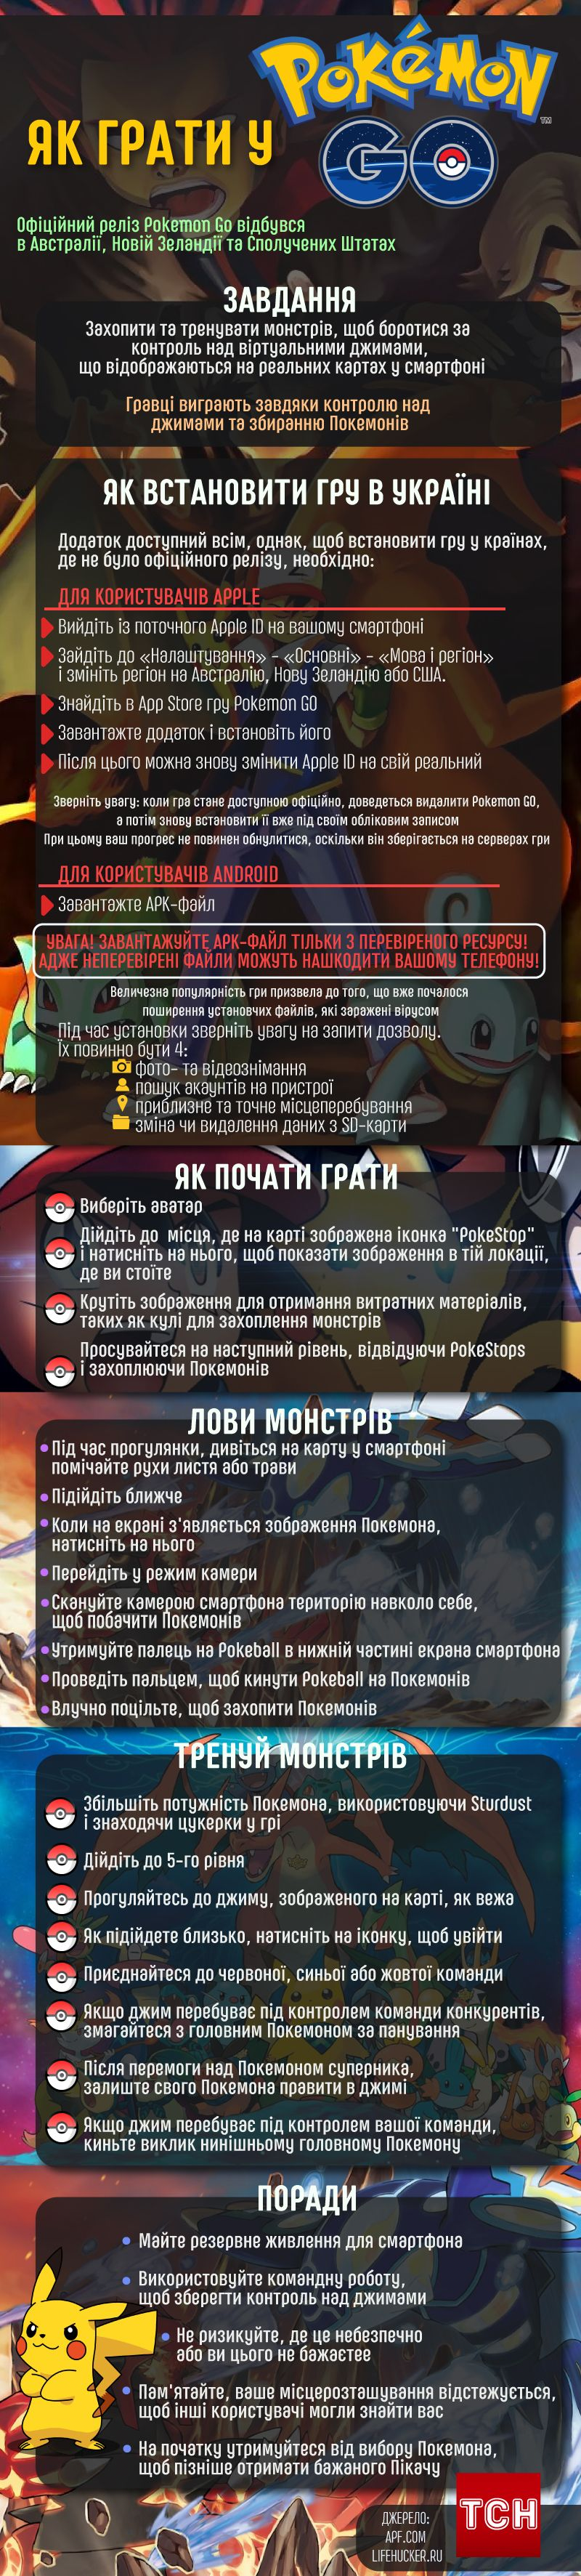 Pokemon GO - Виходь і Лови!